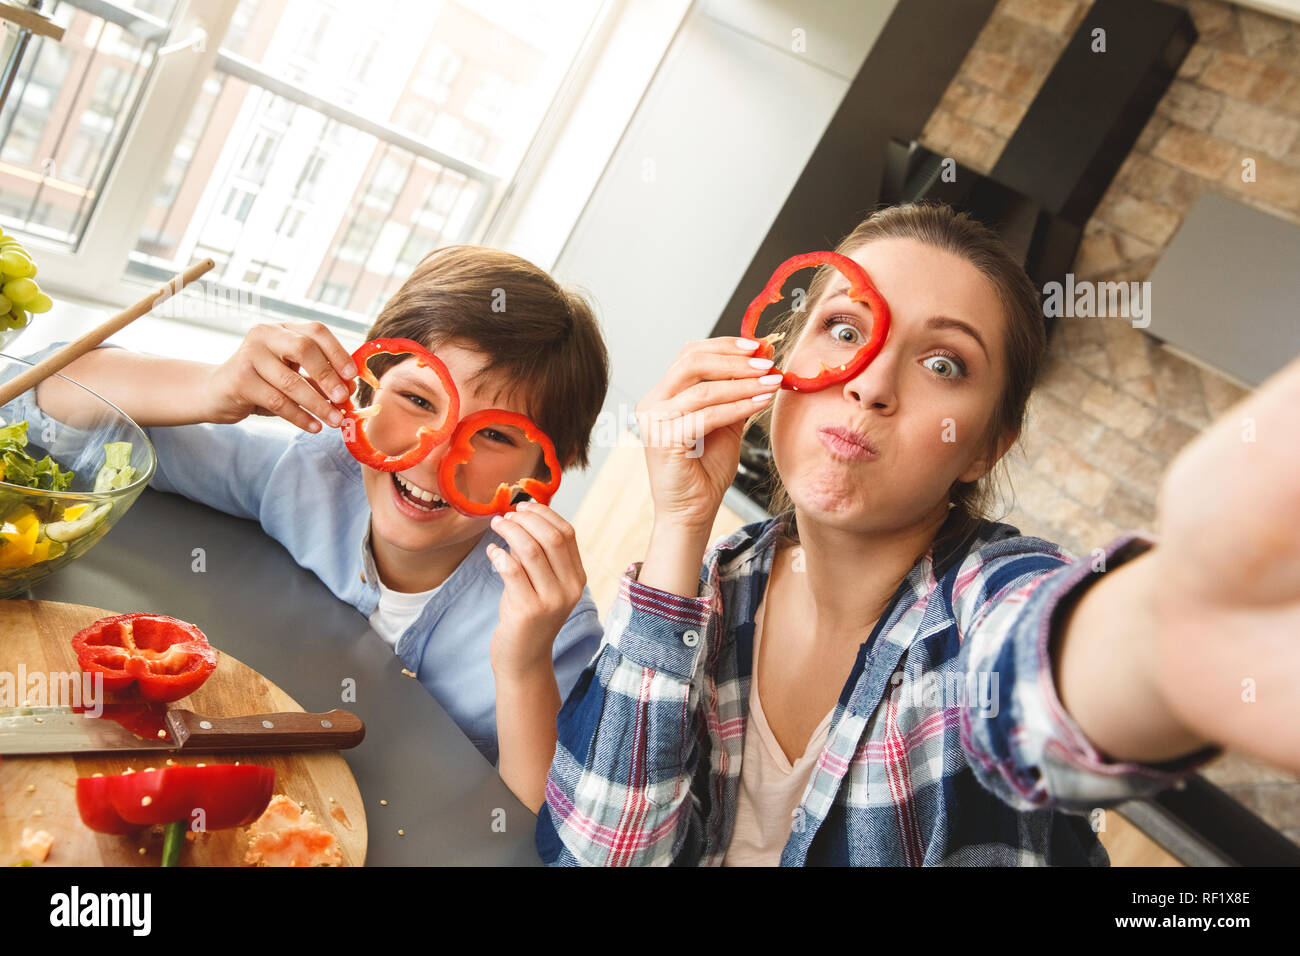 Family at home standing in kitchen together taking selfie photos looking camera grimacing covering face with bell pepper circles - Stock Image